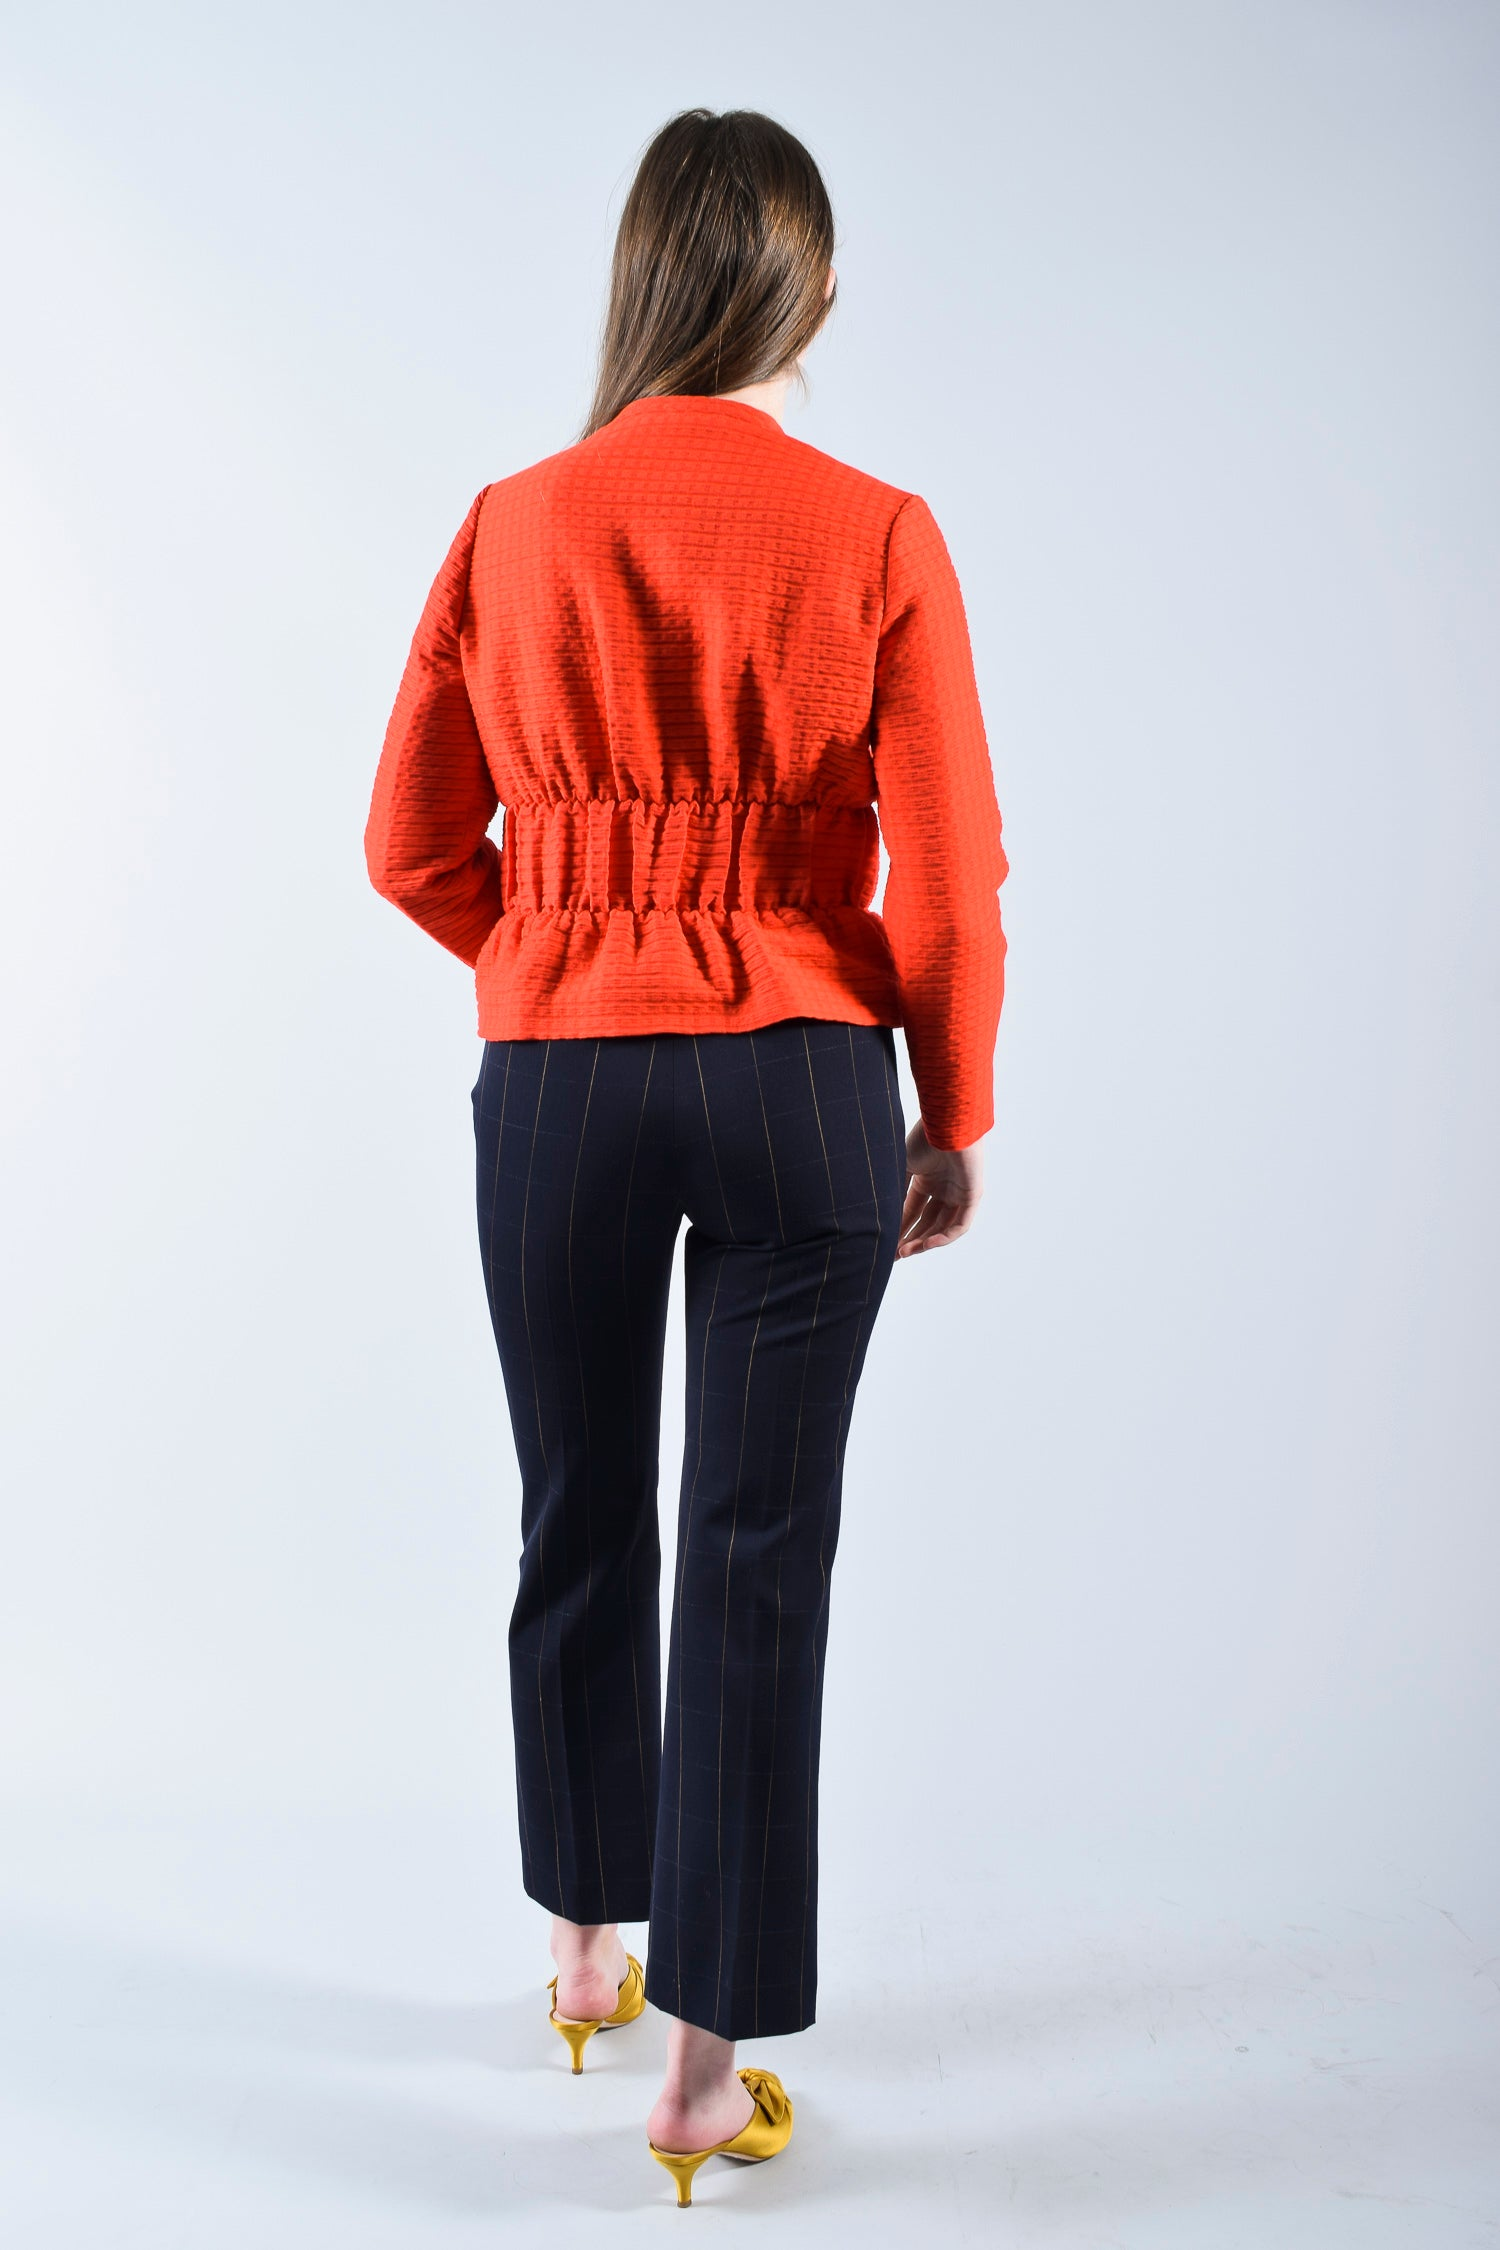 Maje Orange Jacket w/ Gather Details Size 36